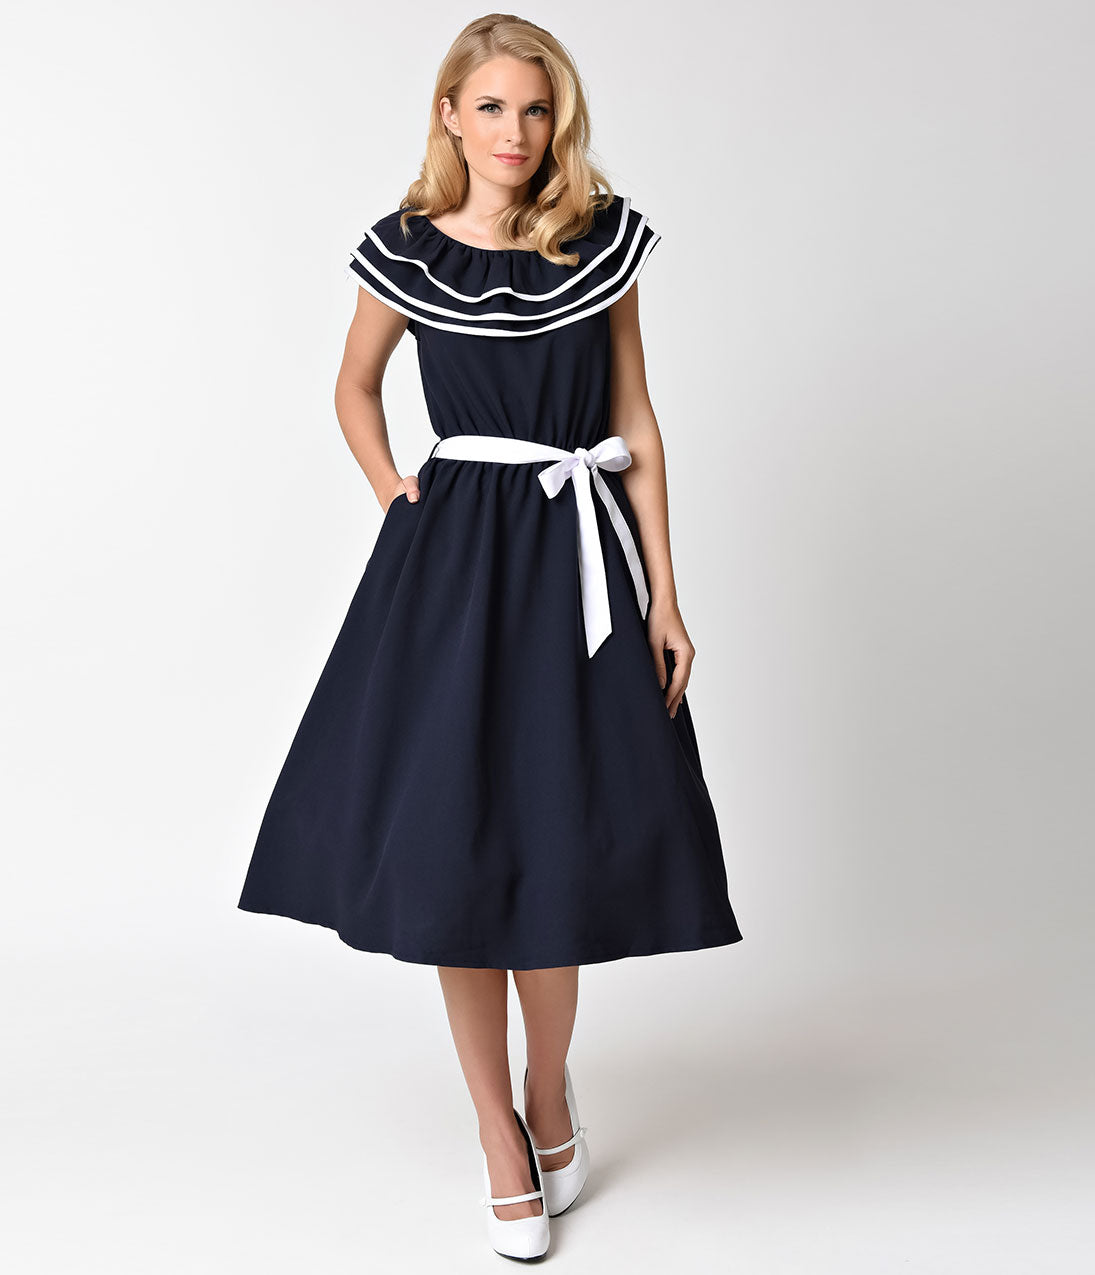 Sailor Dresses, Nautical Theme Dress, WW2 Dresses Voodoo Vixen Navy Blue Nautical Ruffle Hope Swing Dress $39.00 AT vintagedancer.com